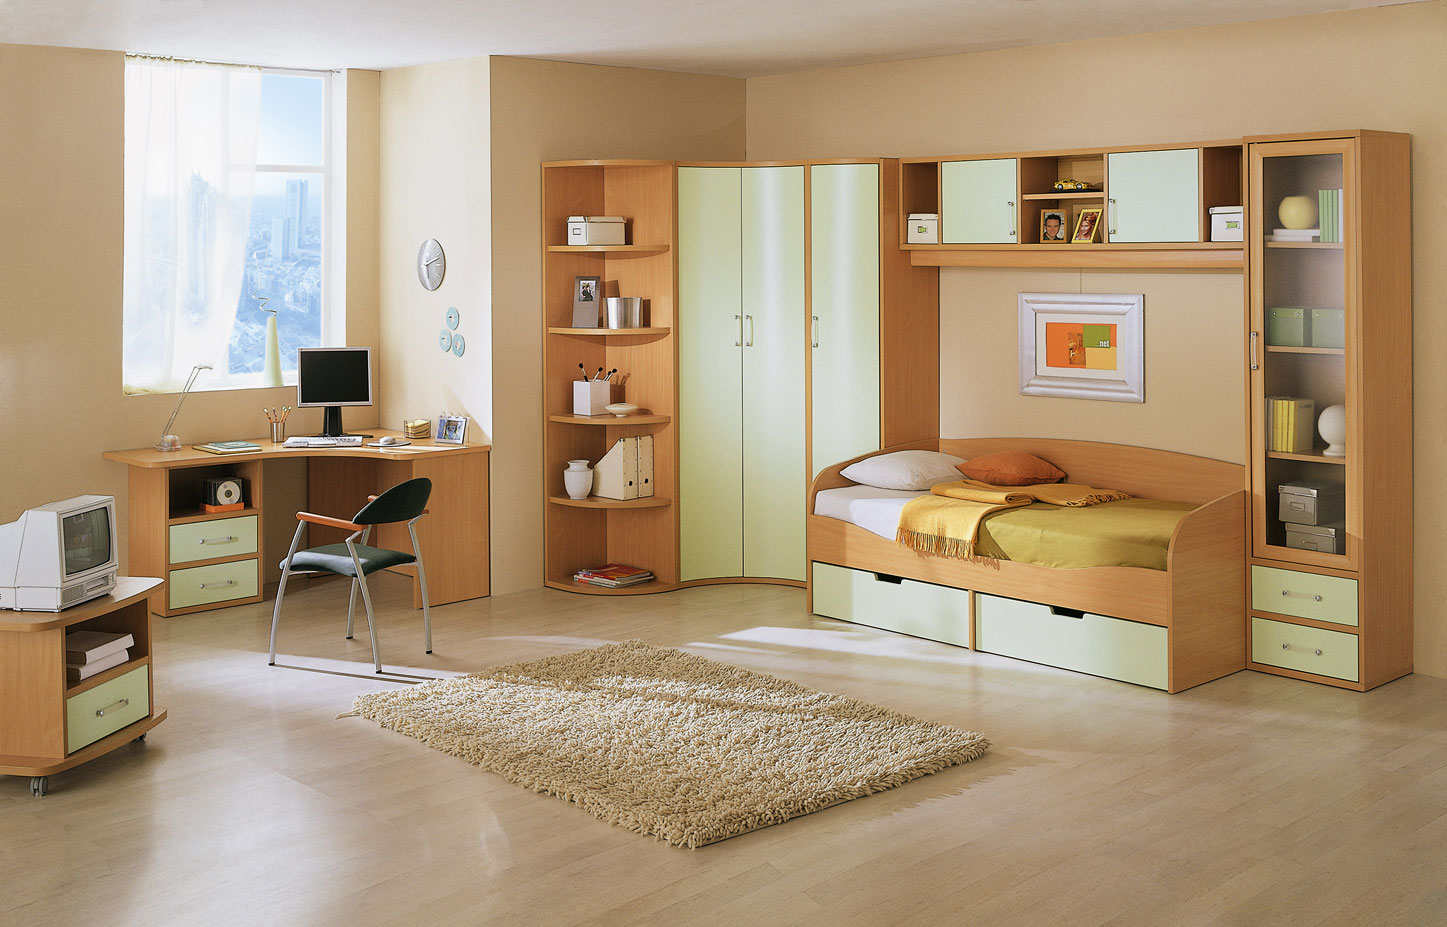 Place Wooden Corner Computer Desk inside Wide Kids Room Decor with Brown Storage Bed and Tidy Cabinets